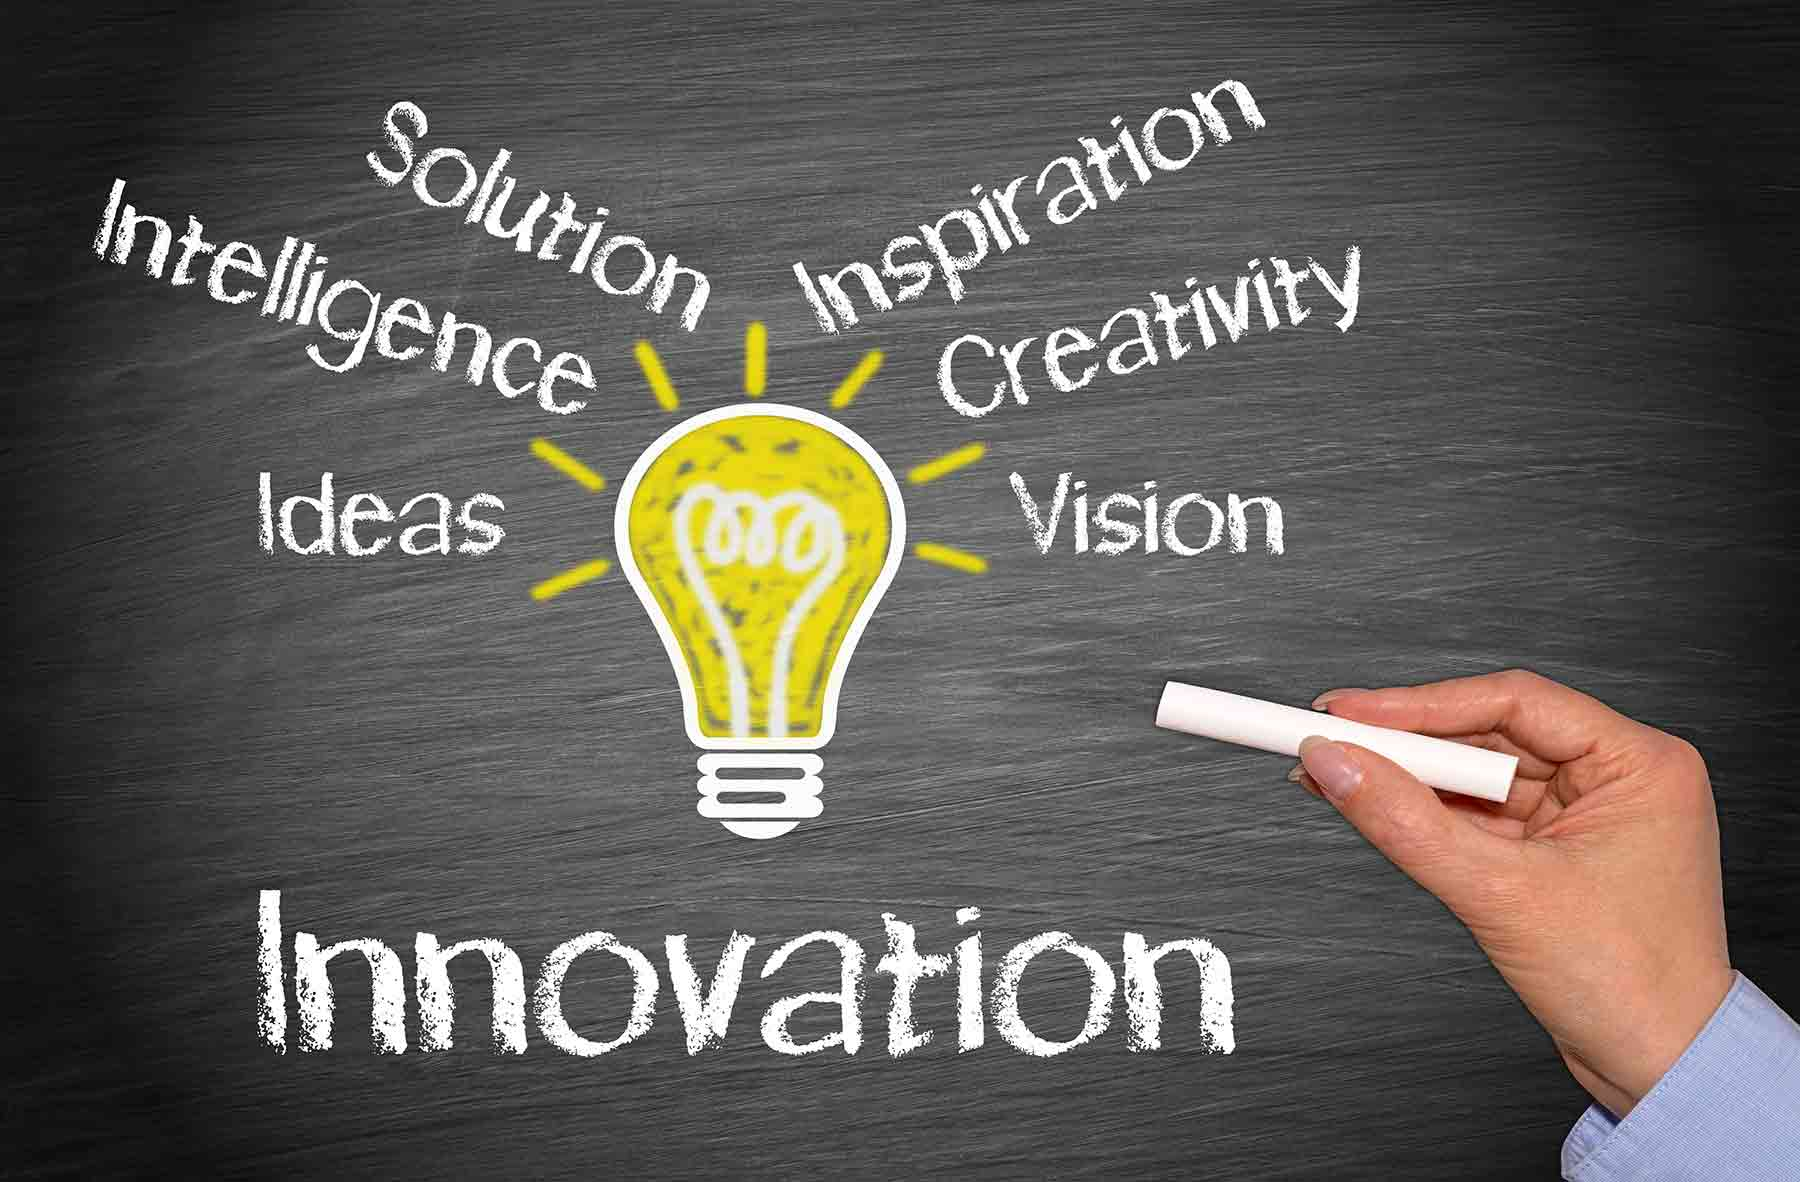 creativity as the heart and soul of innovation for the new entrants